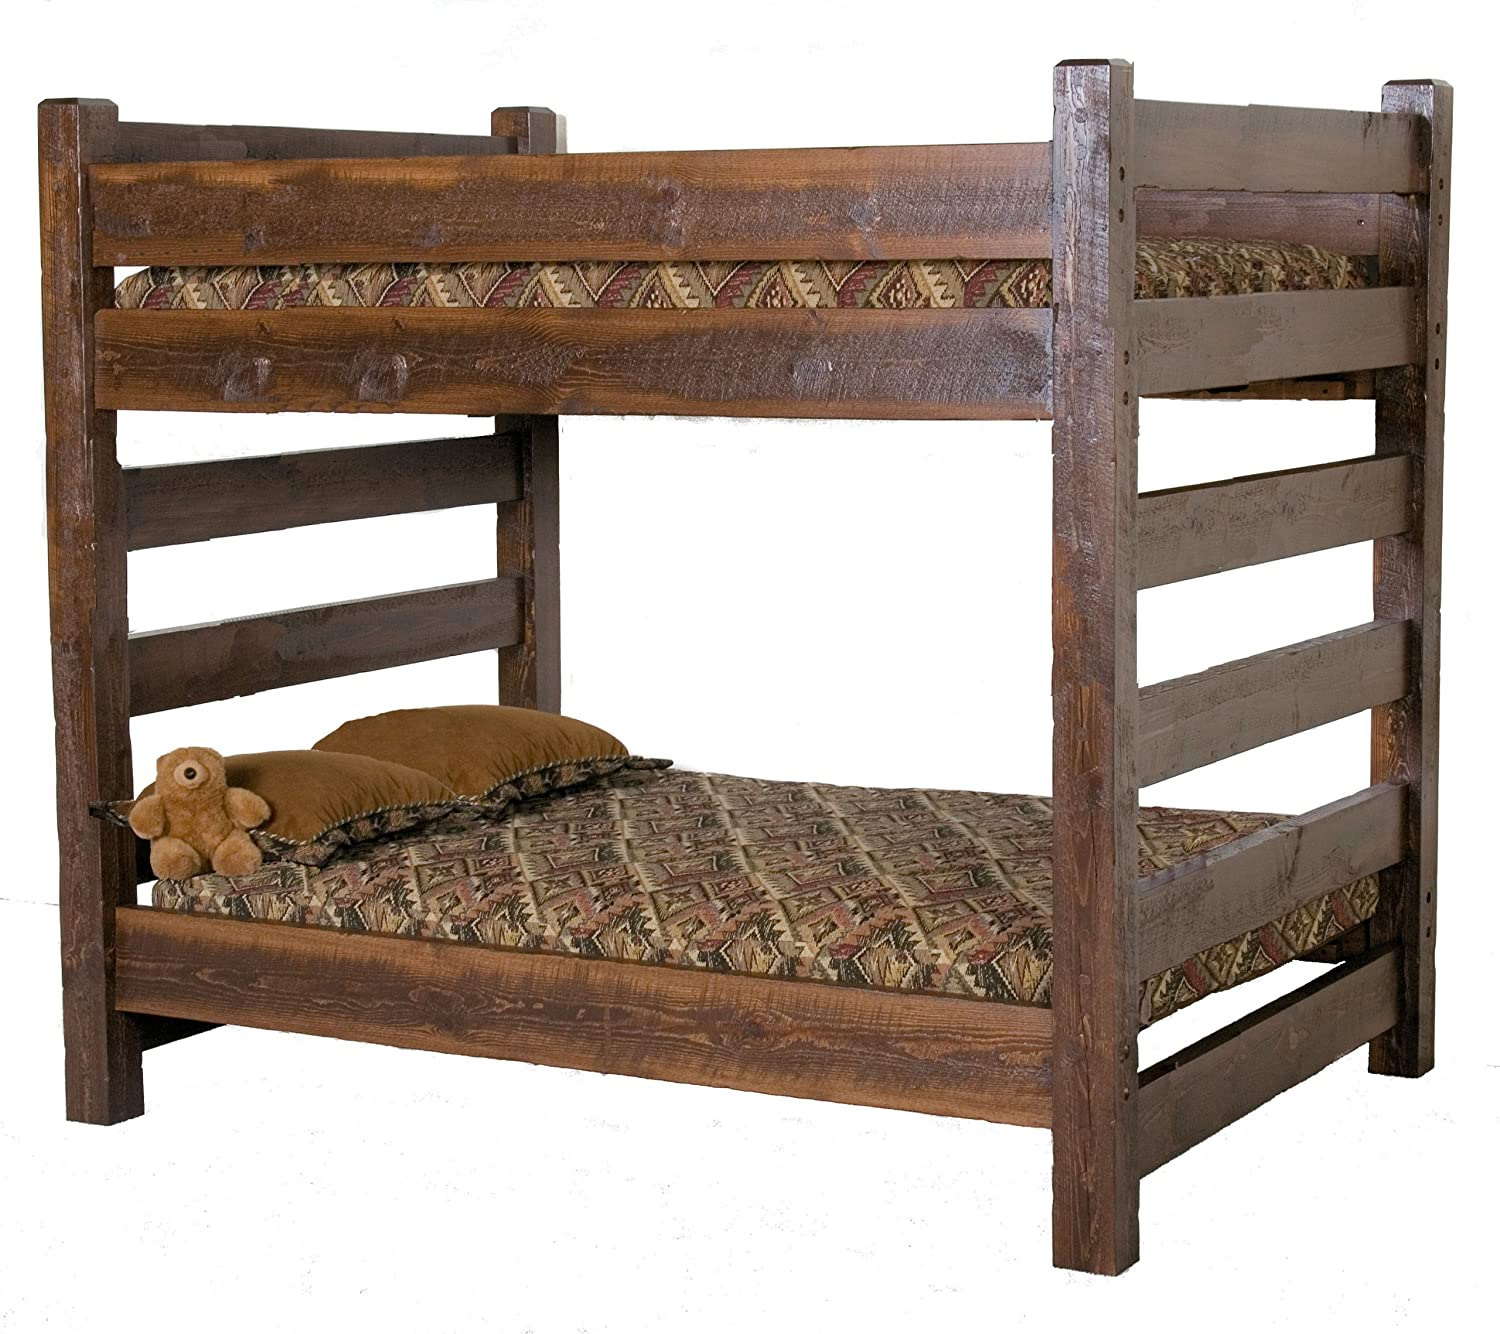 ... Bed Plans Plans Woodworking beech woodworking bench | painstaking97pff